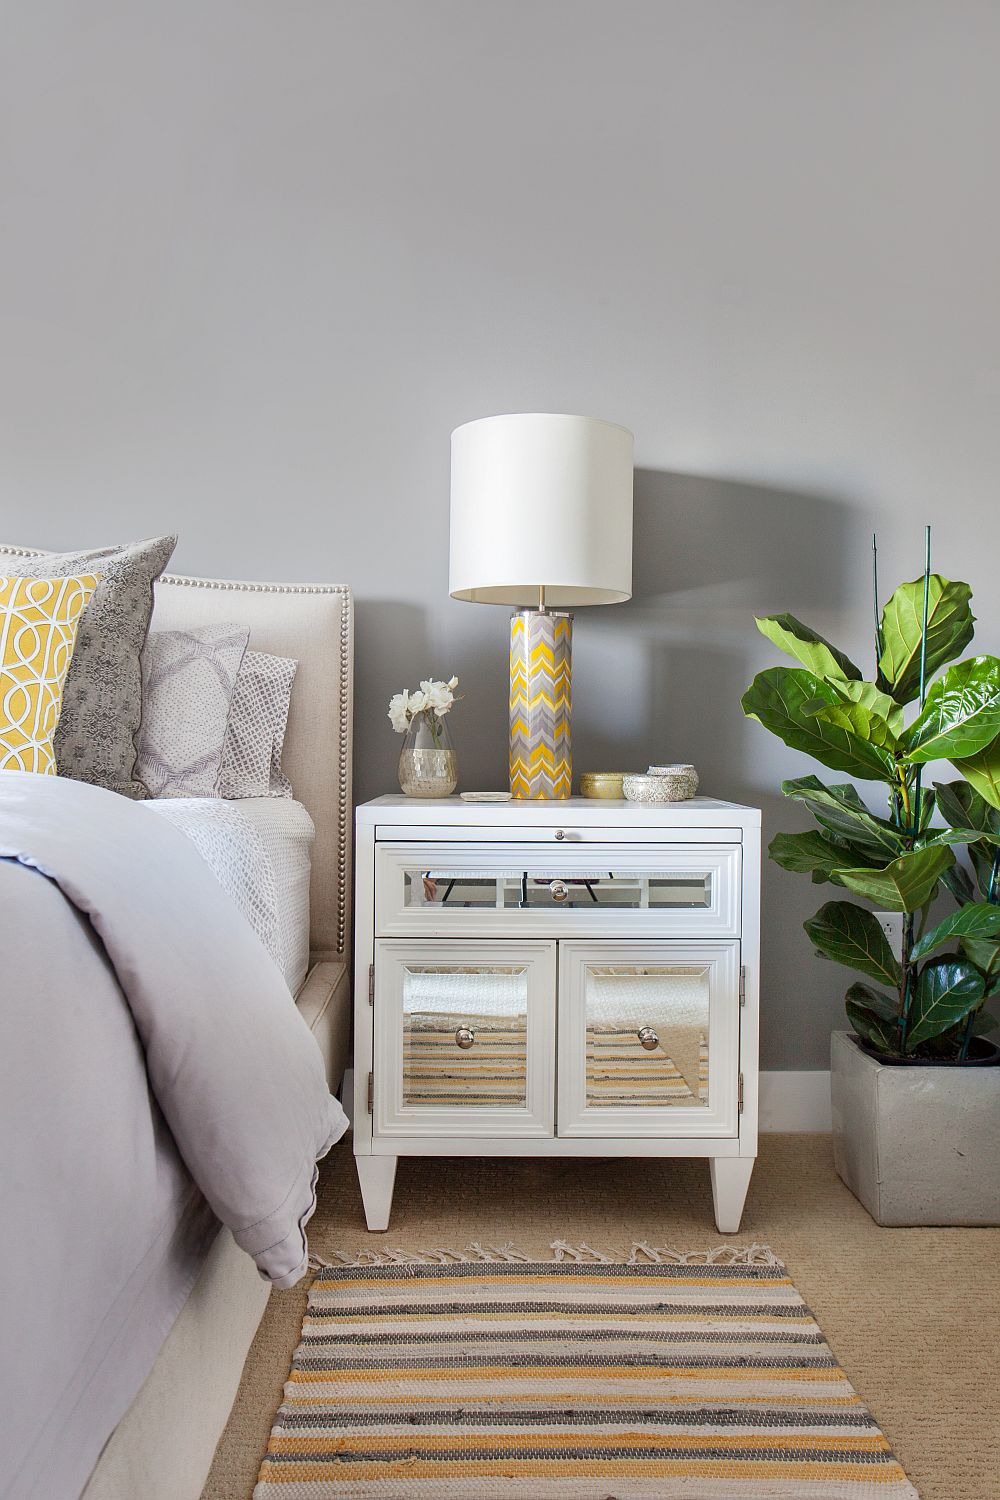 Bedside table lamp with yellow and gray chevron pattern